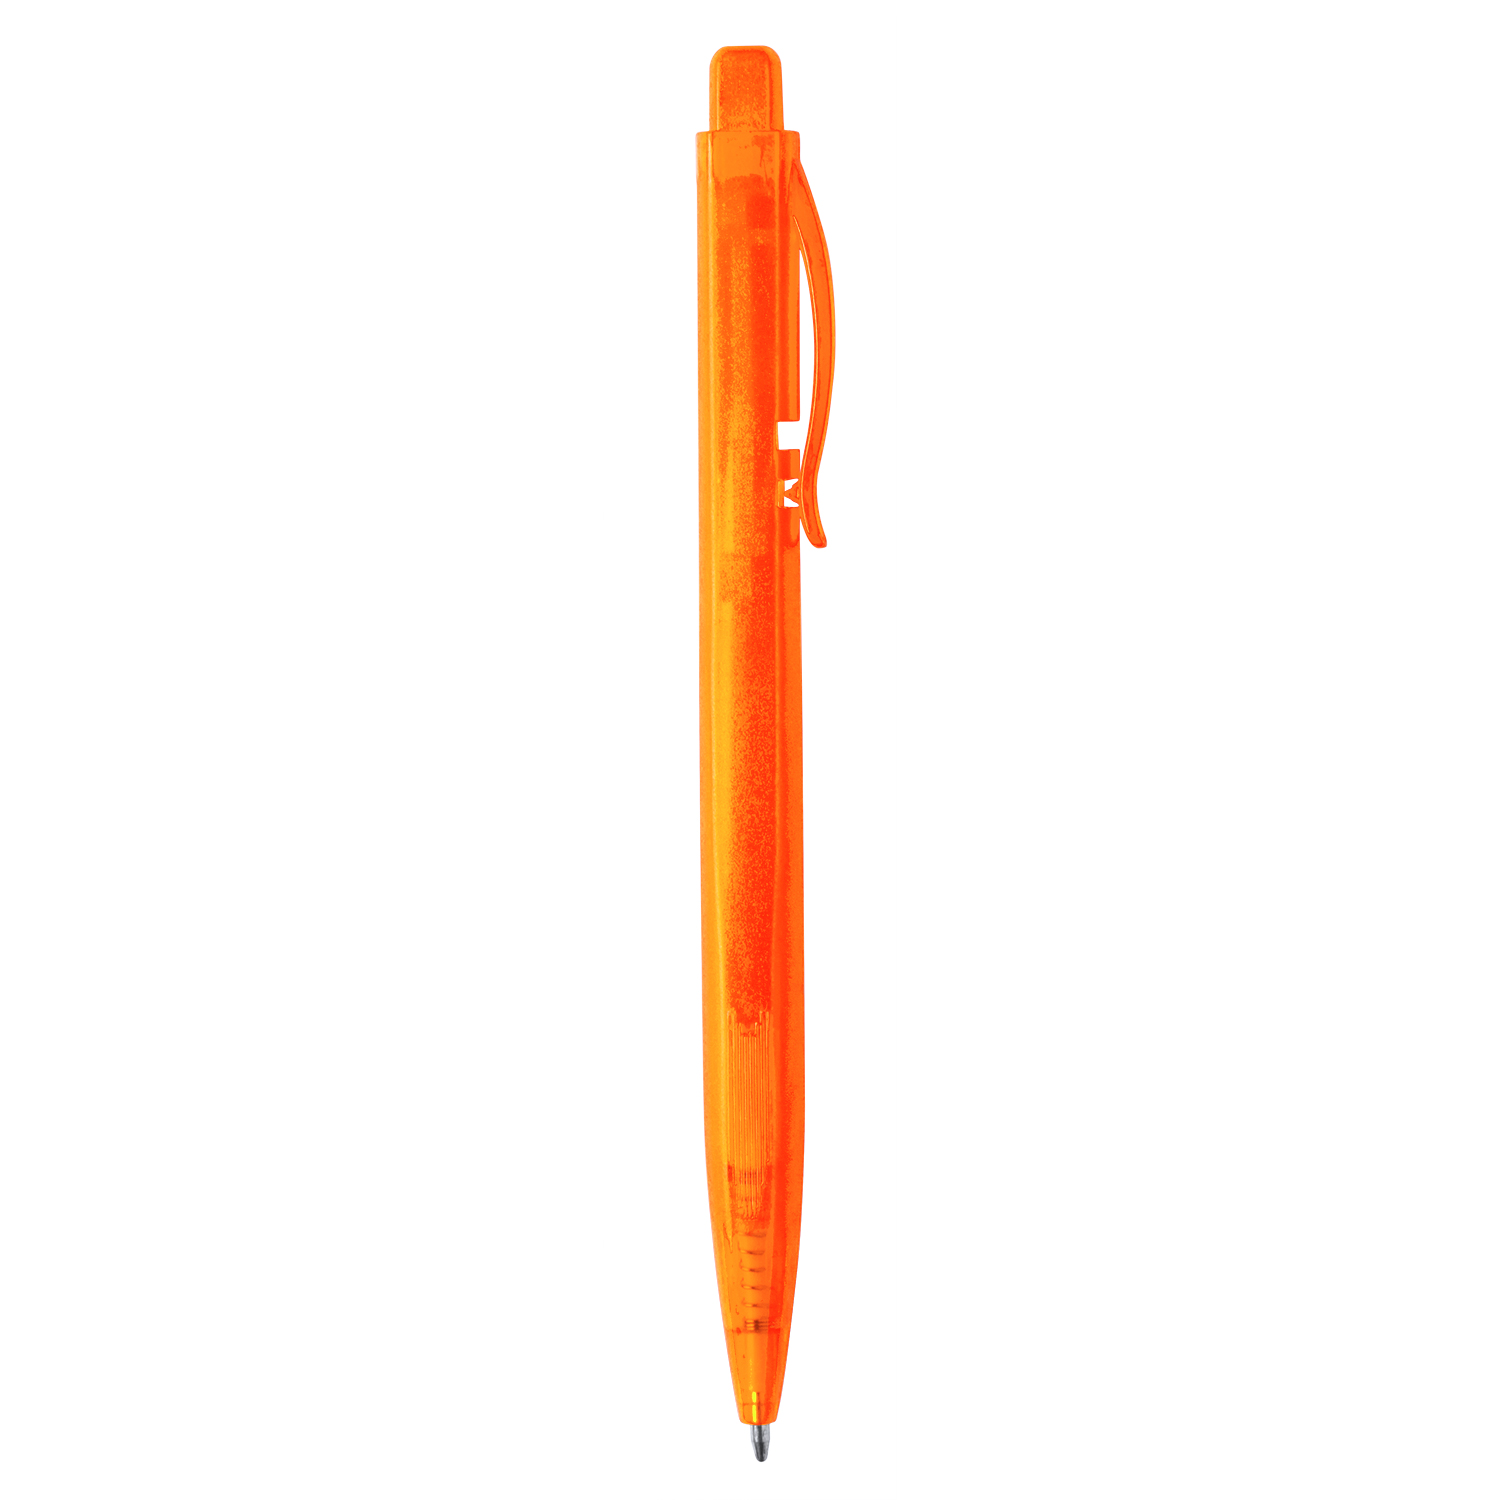 Plastic Pen 997 (plastic ball pen with blue ink) - hmi20997-11 (Orange)